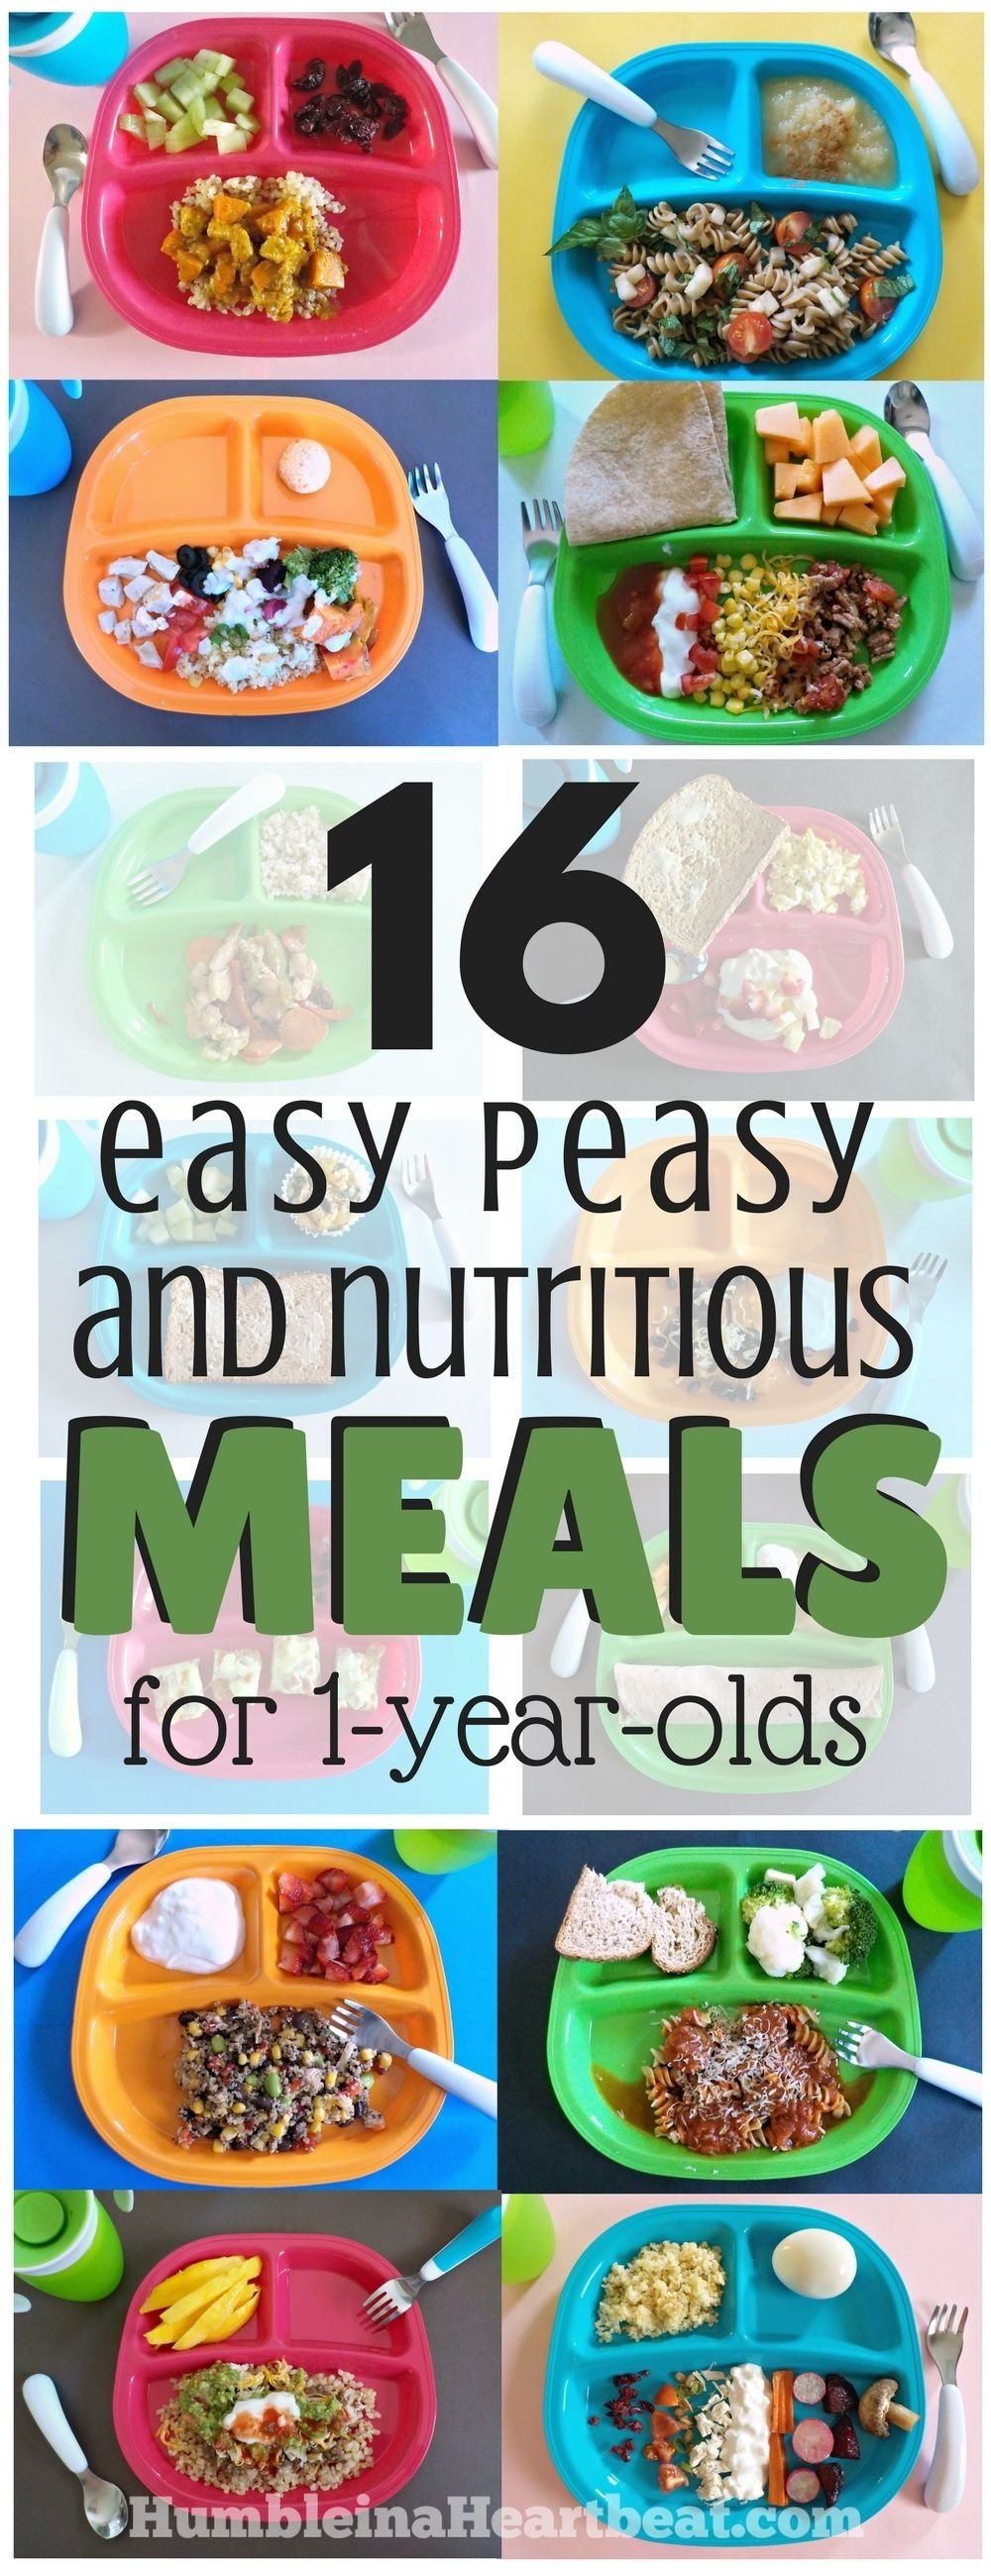 10 Nice Food Ideas For 1 Year Old 16 simple meals for your 1 year old that will make you supermom 3 2020